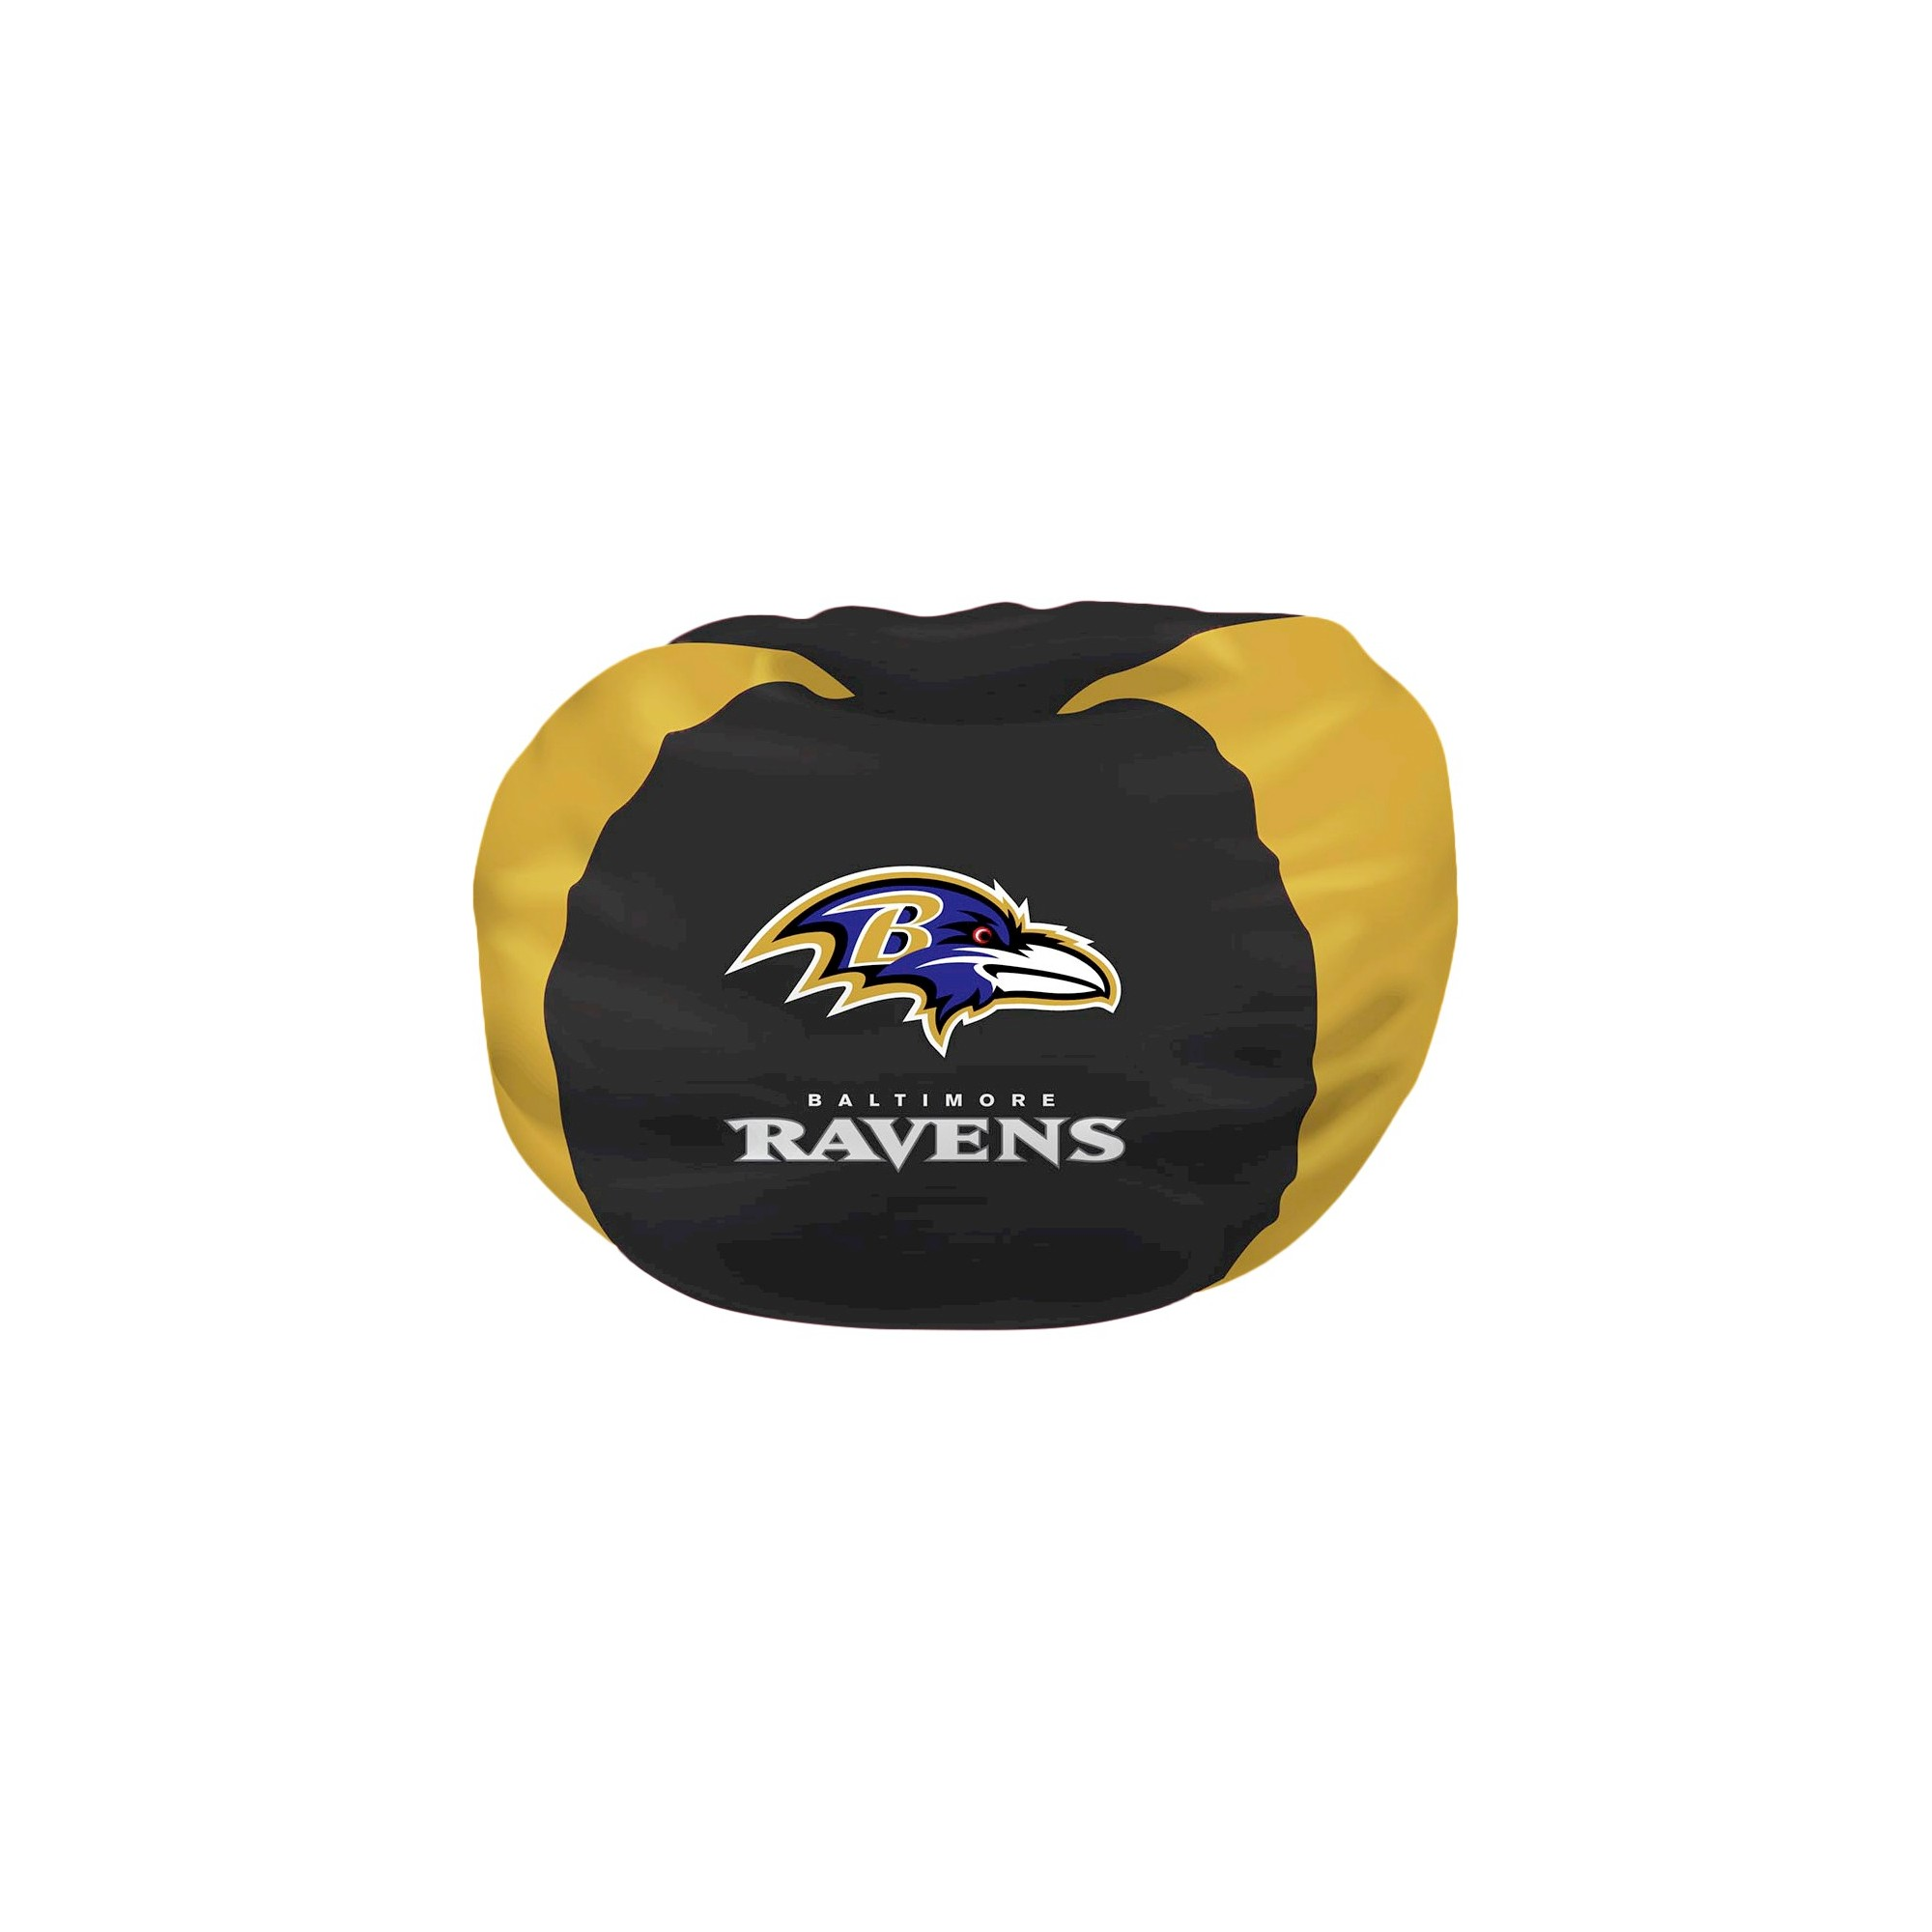 Terrific Baltimore Ravens Northwest Bean Bag Chair In 2019 Products Andrewgaddart Wooden Chair Designs For Living Room Andrewgaddartcom